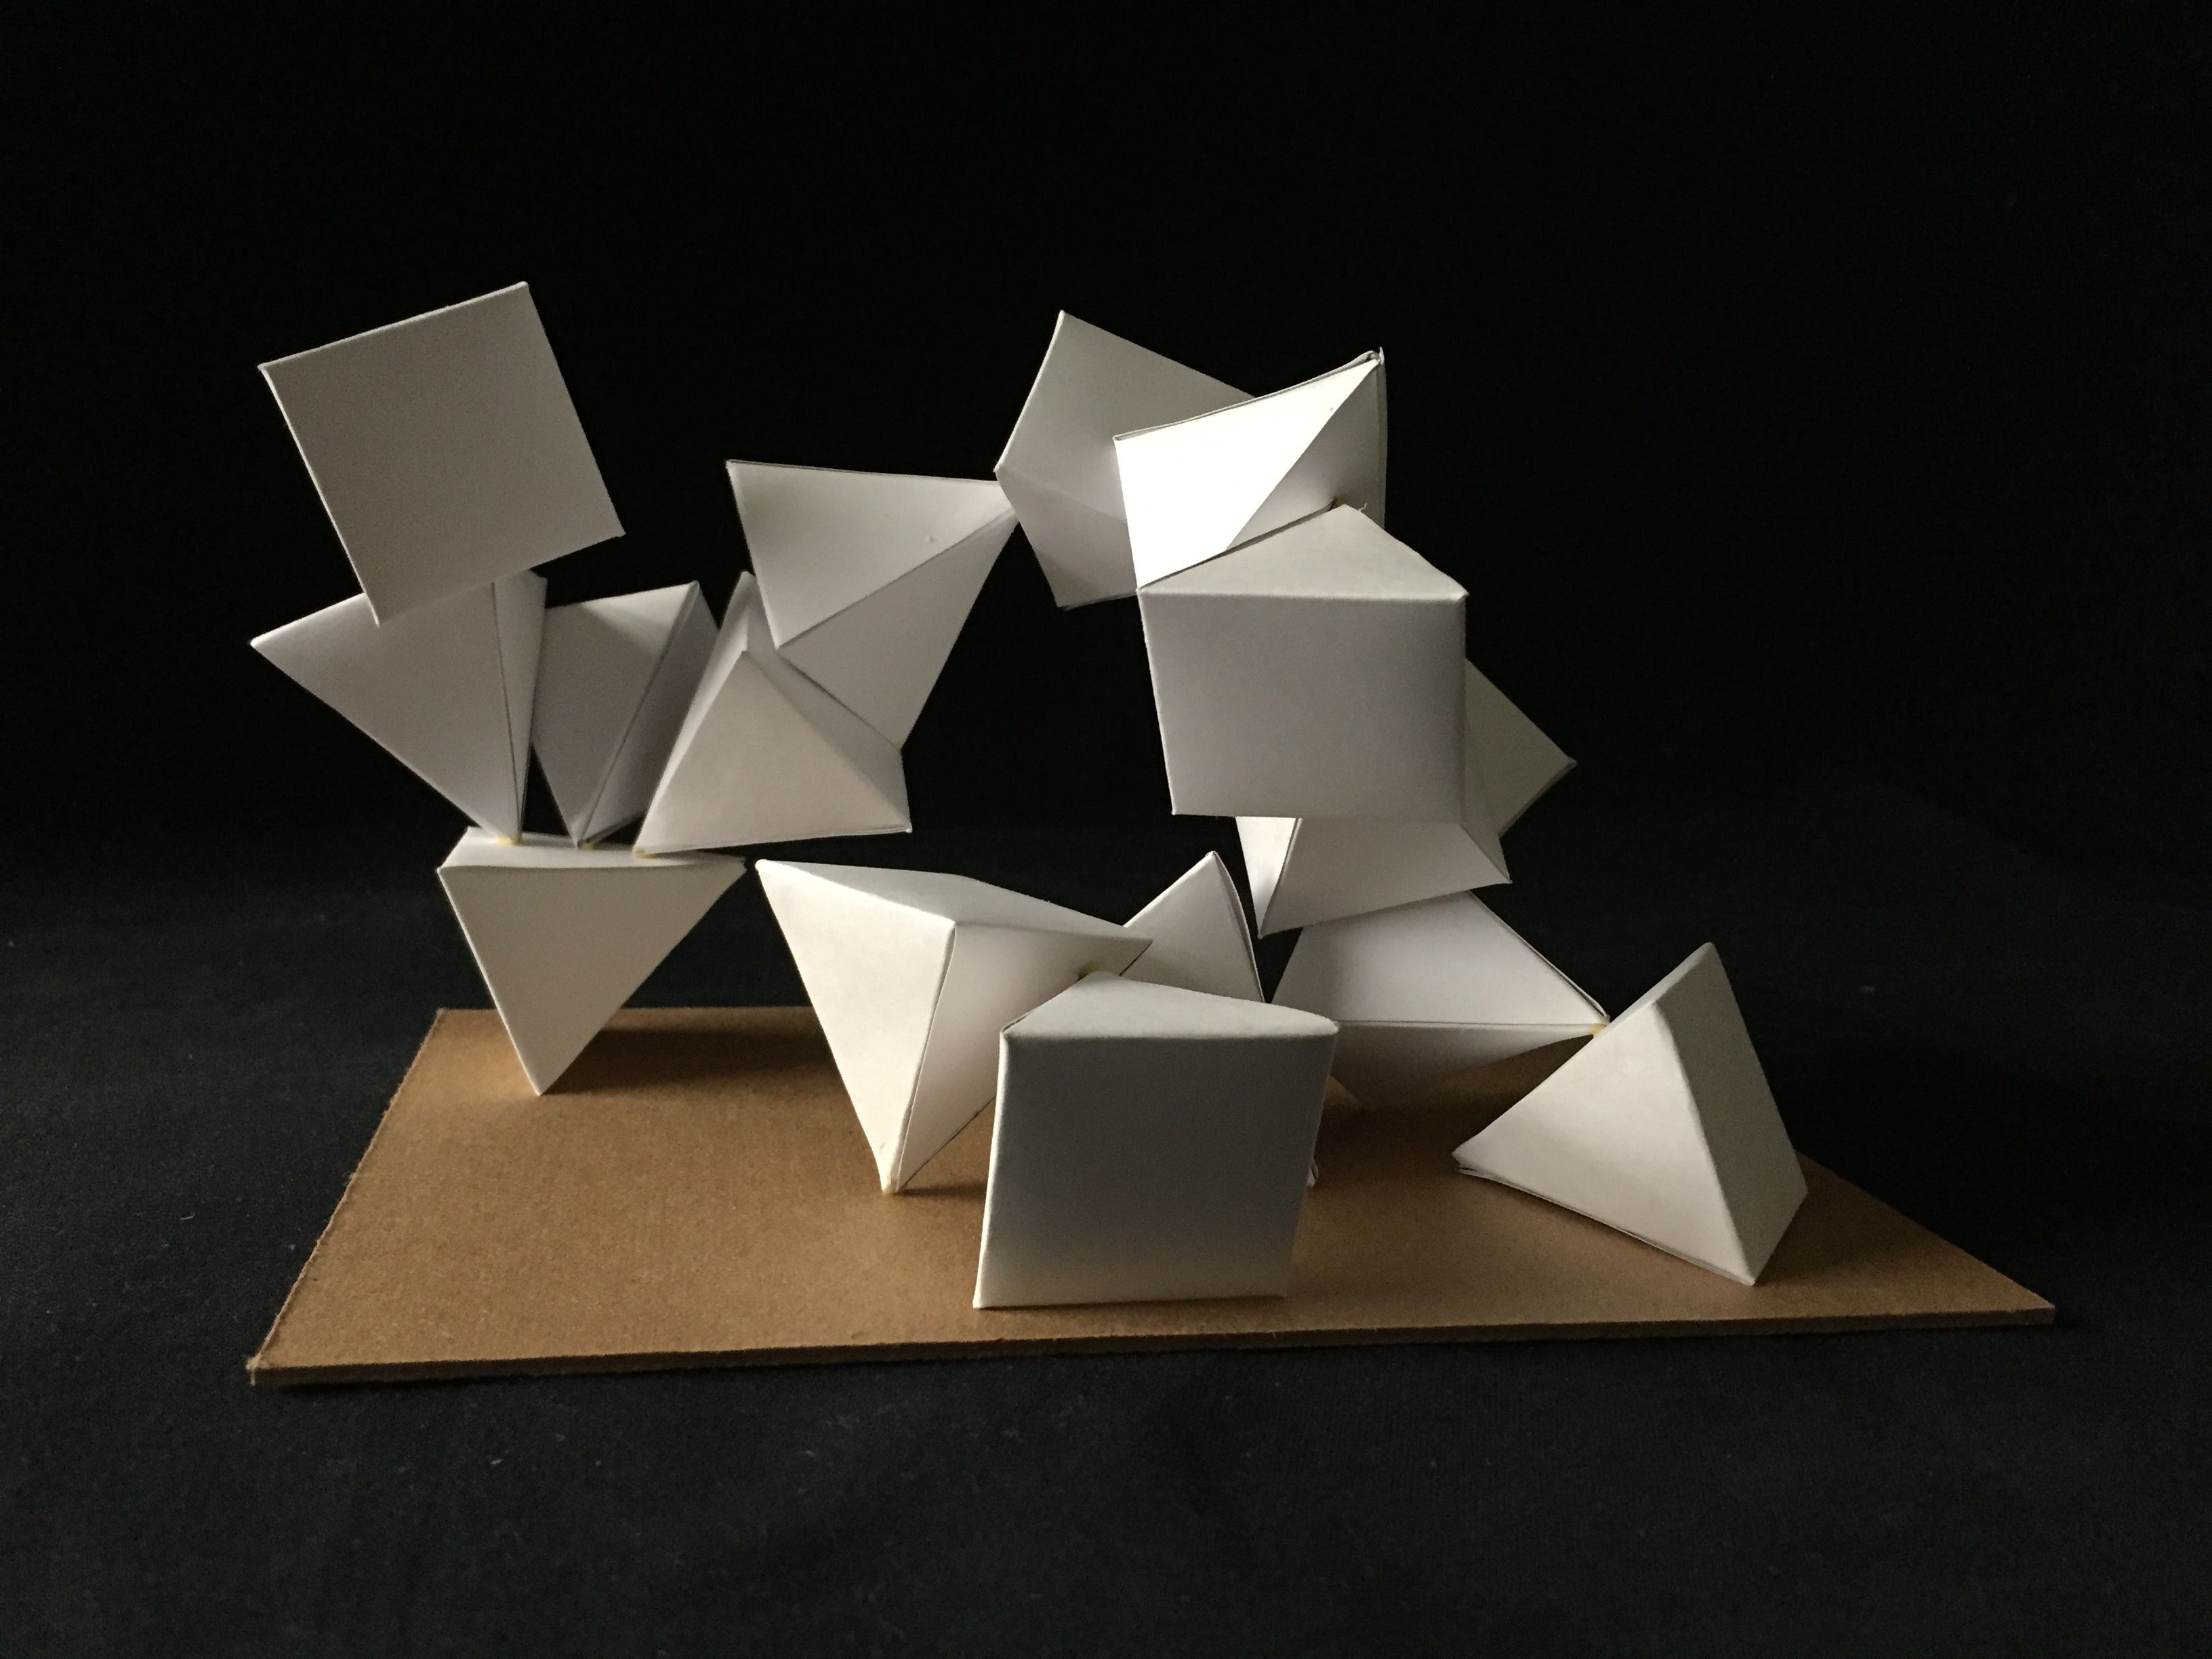 Origami Architecture Design Pyramid Composition Repetition And Movementcard Stock And Wood